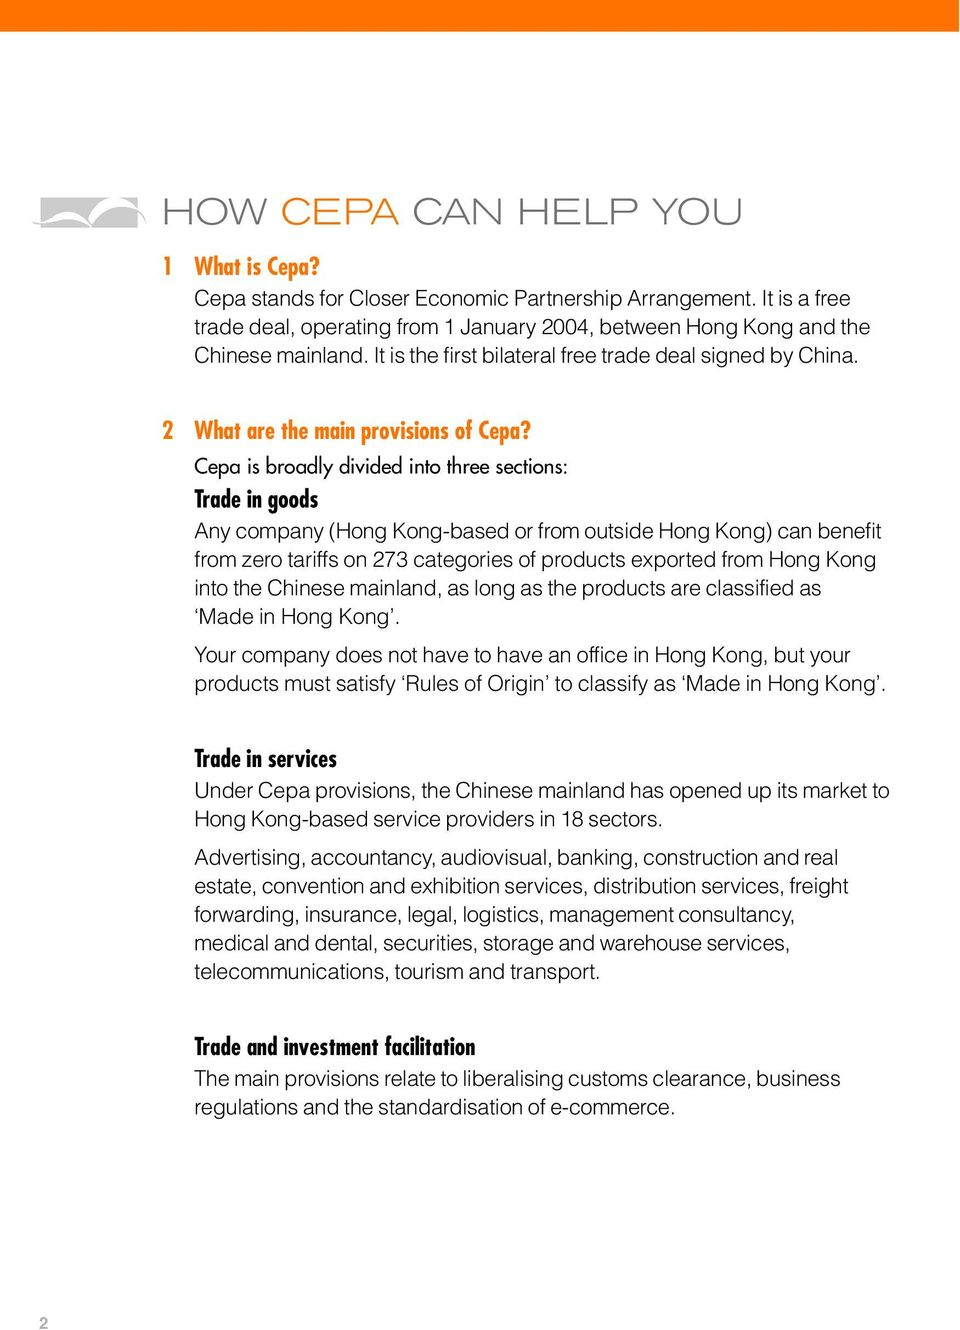 Cepa is broadly divided into three sections: Trade in goods Any company (Hong Kong-based or from outside Hong Kong) can benefit from zero tariffs on 273 categories of products exported from Hong Kong